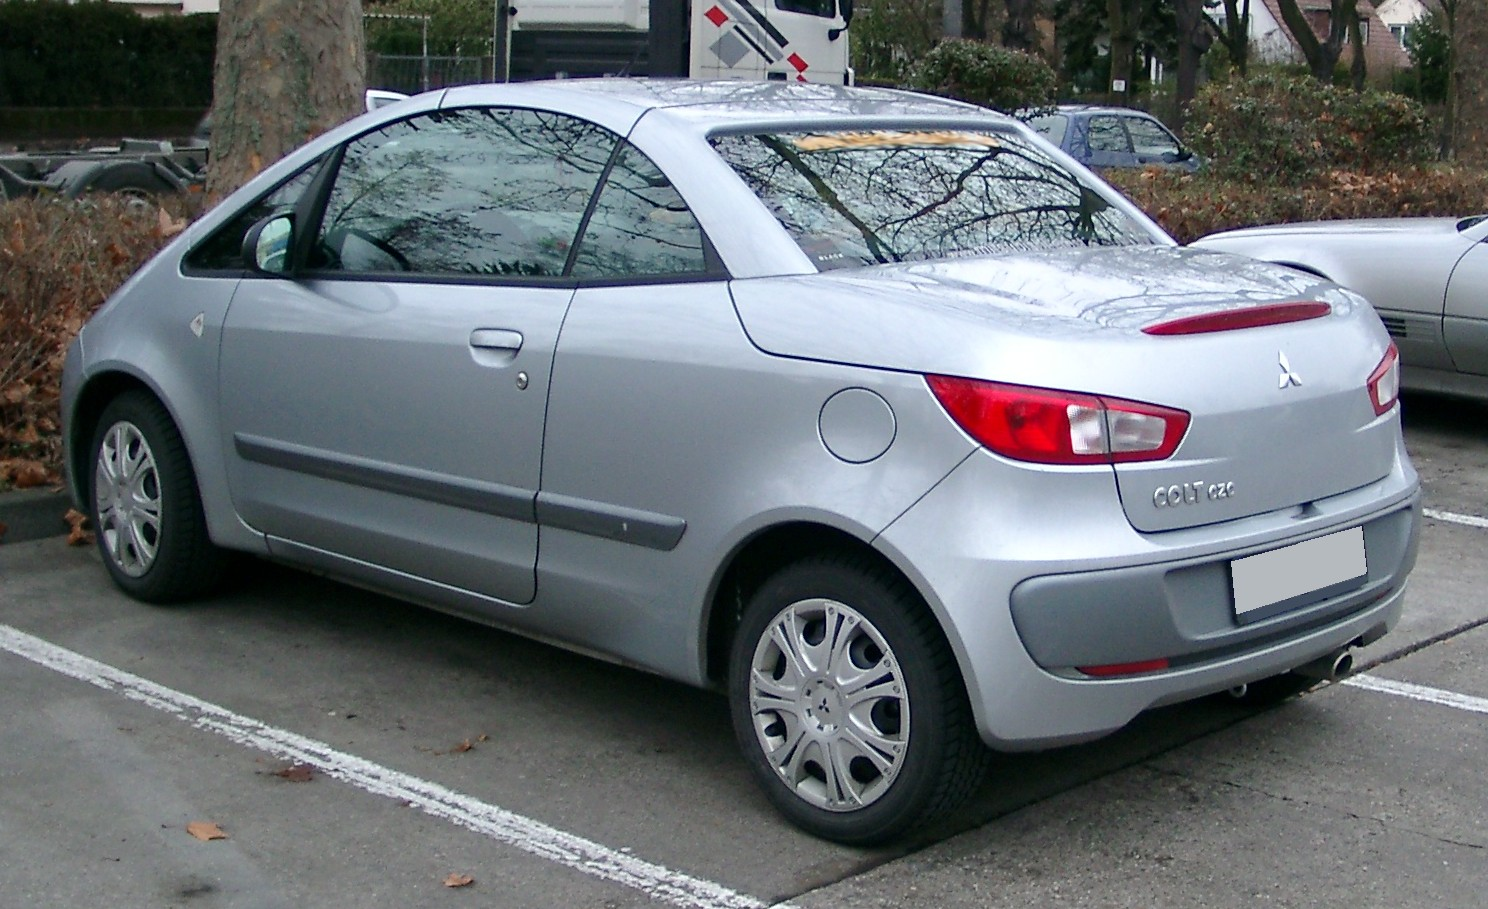 New cars Mitsubishi Colt in San Diego » Exchange Cars in Your City